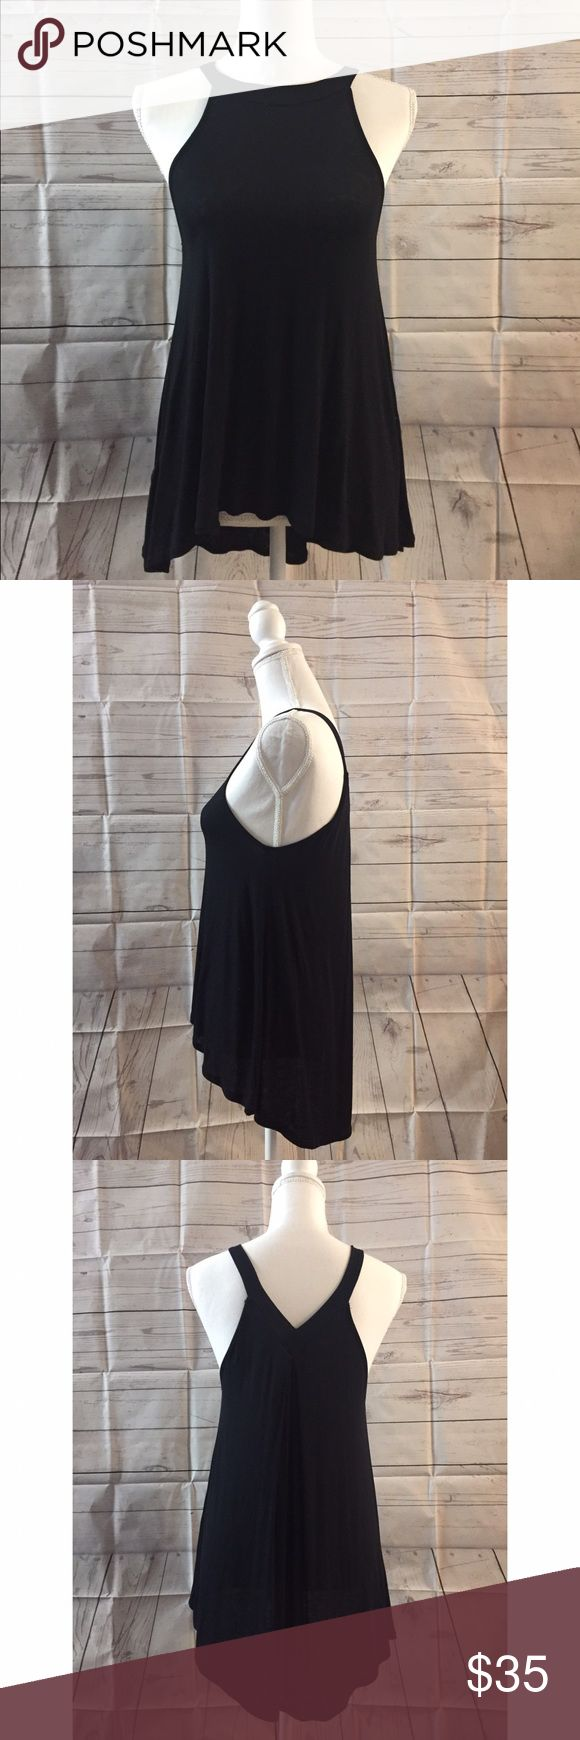 BCBGeneration Asymmetrical Tunic Tank Top Size S New BCBGeneration top that has never been worn BCBGeneration Tops Tunics